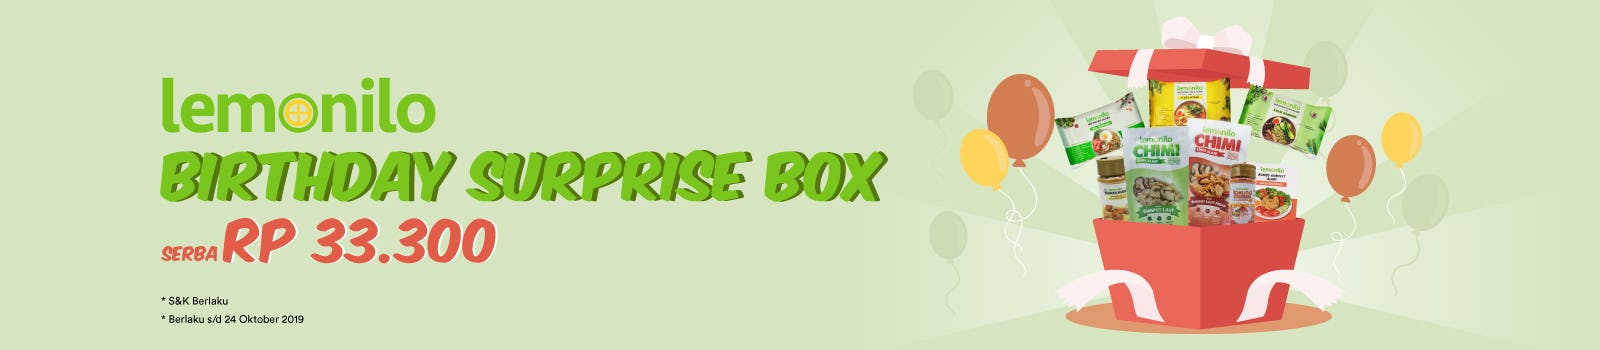 Lemonilo Birthday Surprise Box